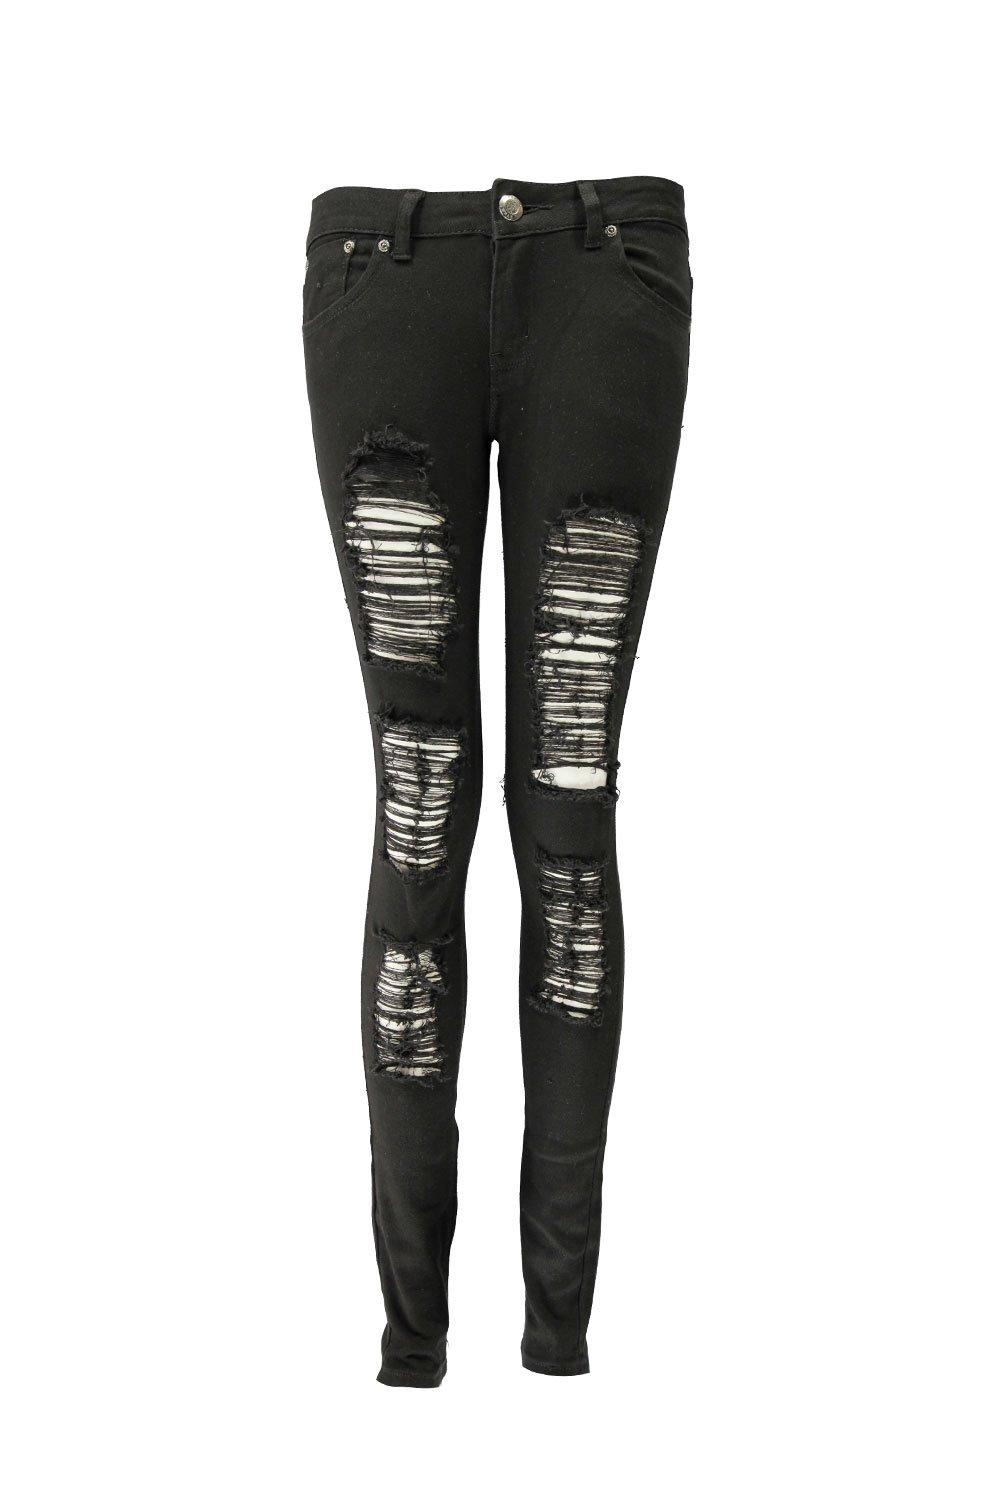 Dr Denim Ira Skinny Ripped Overall Jeans in Black. $ New Look super skinny jeans with knee rips in white. $ River Island super skinny jeans with rip and repair in light blue wash. $ Jack & Jones skinny jeans in destroyed gray denim. $